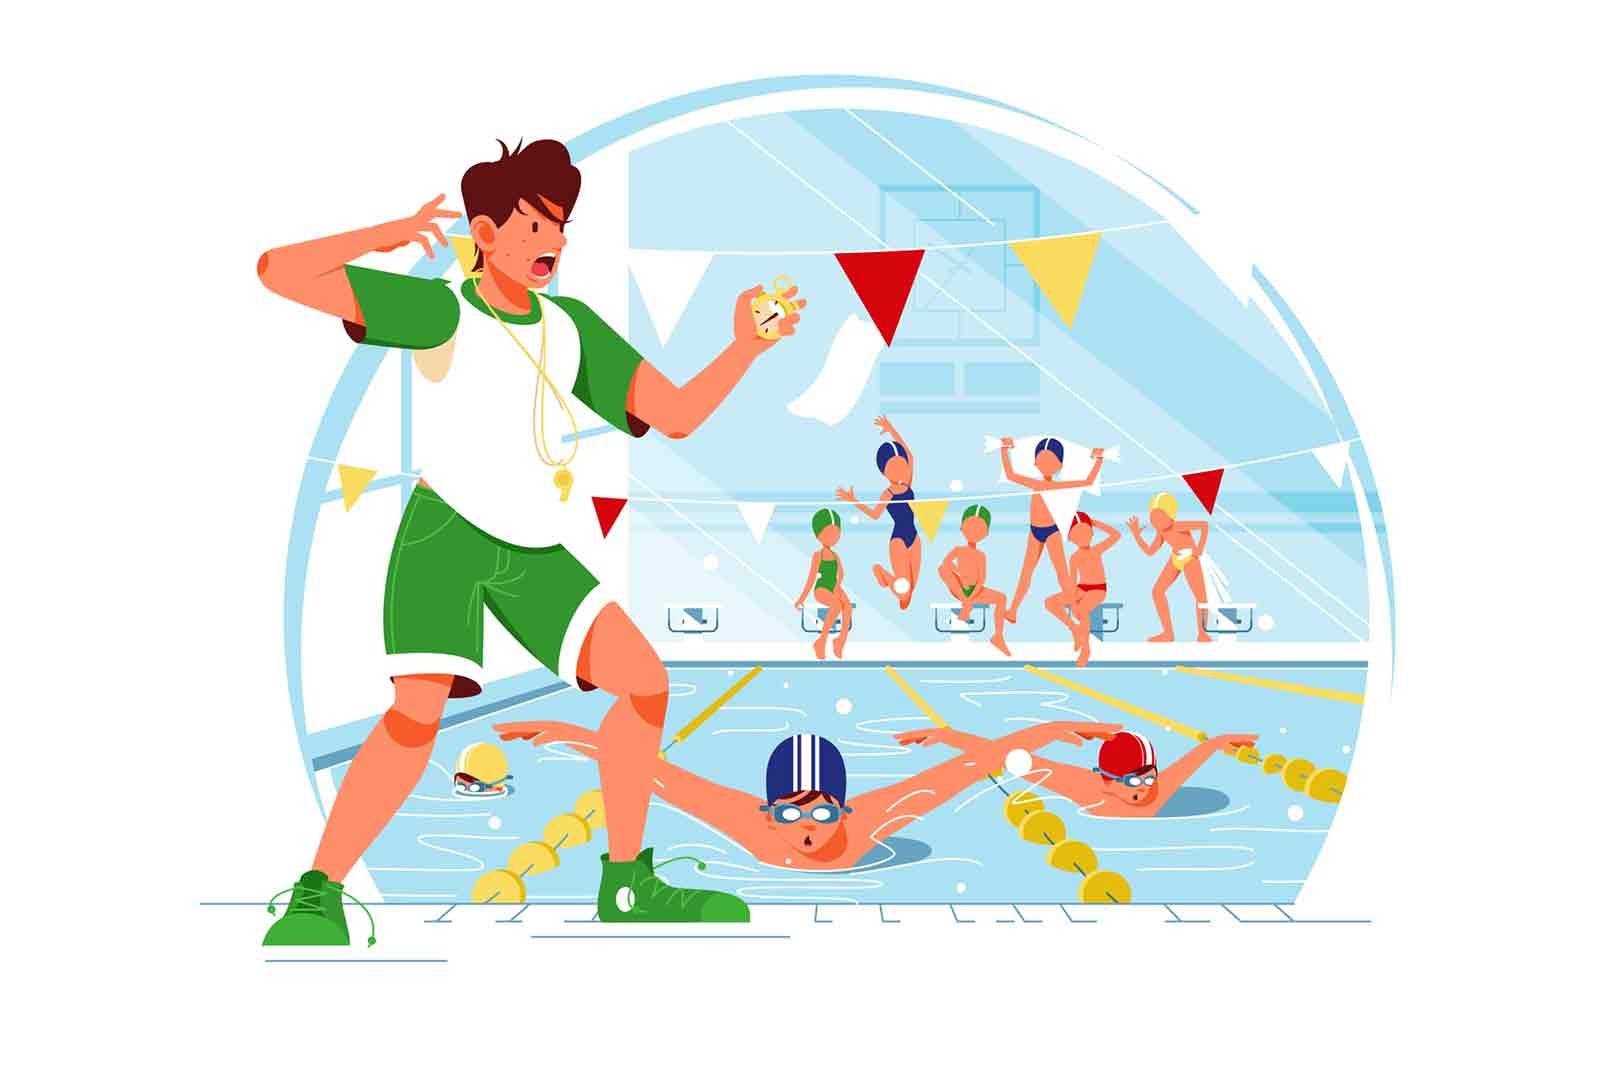 Swimming competition concept vector illustration.